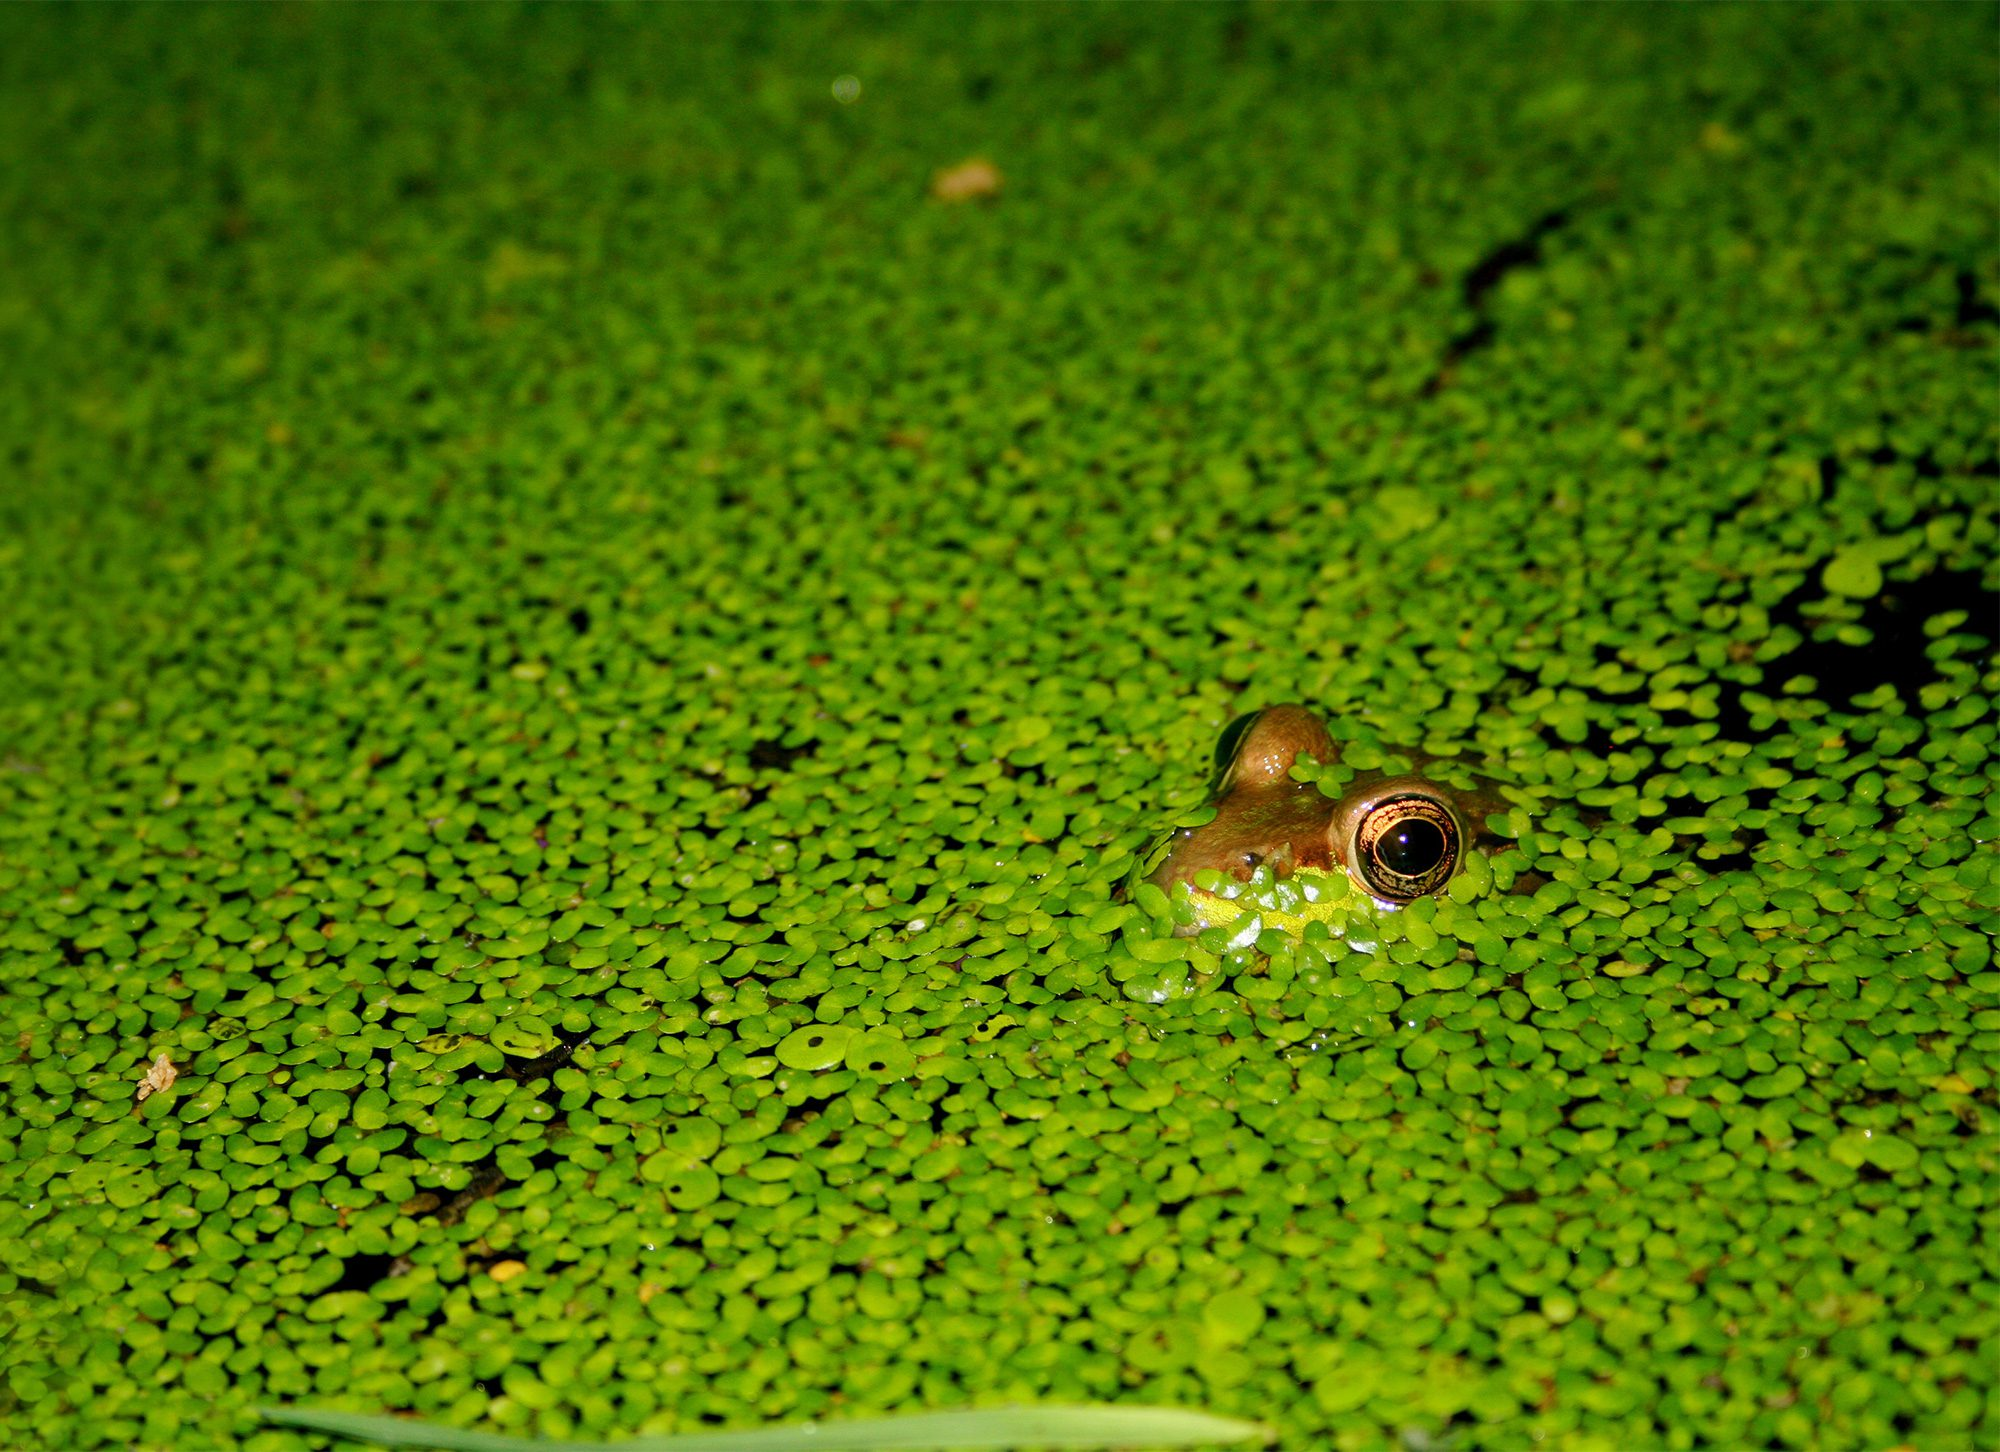 We're managing Land for biodiversity to support unique animals like this frog. Photo by Mike Fox